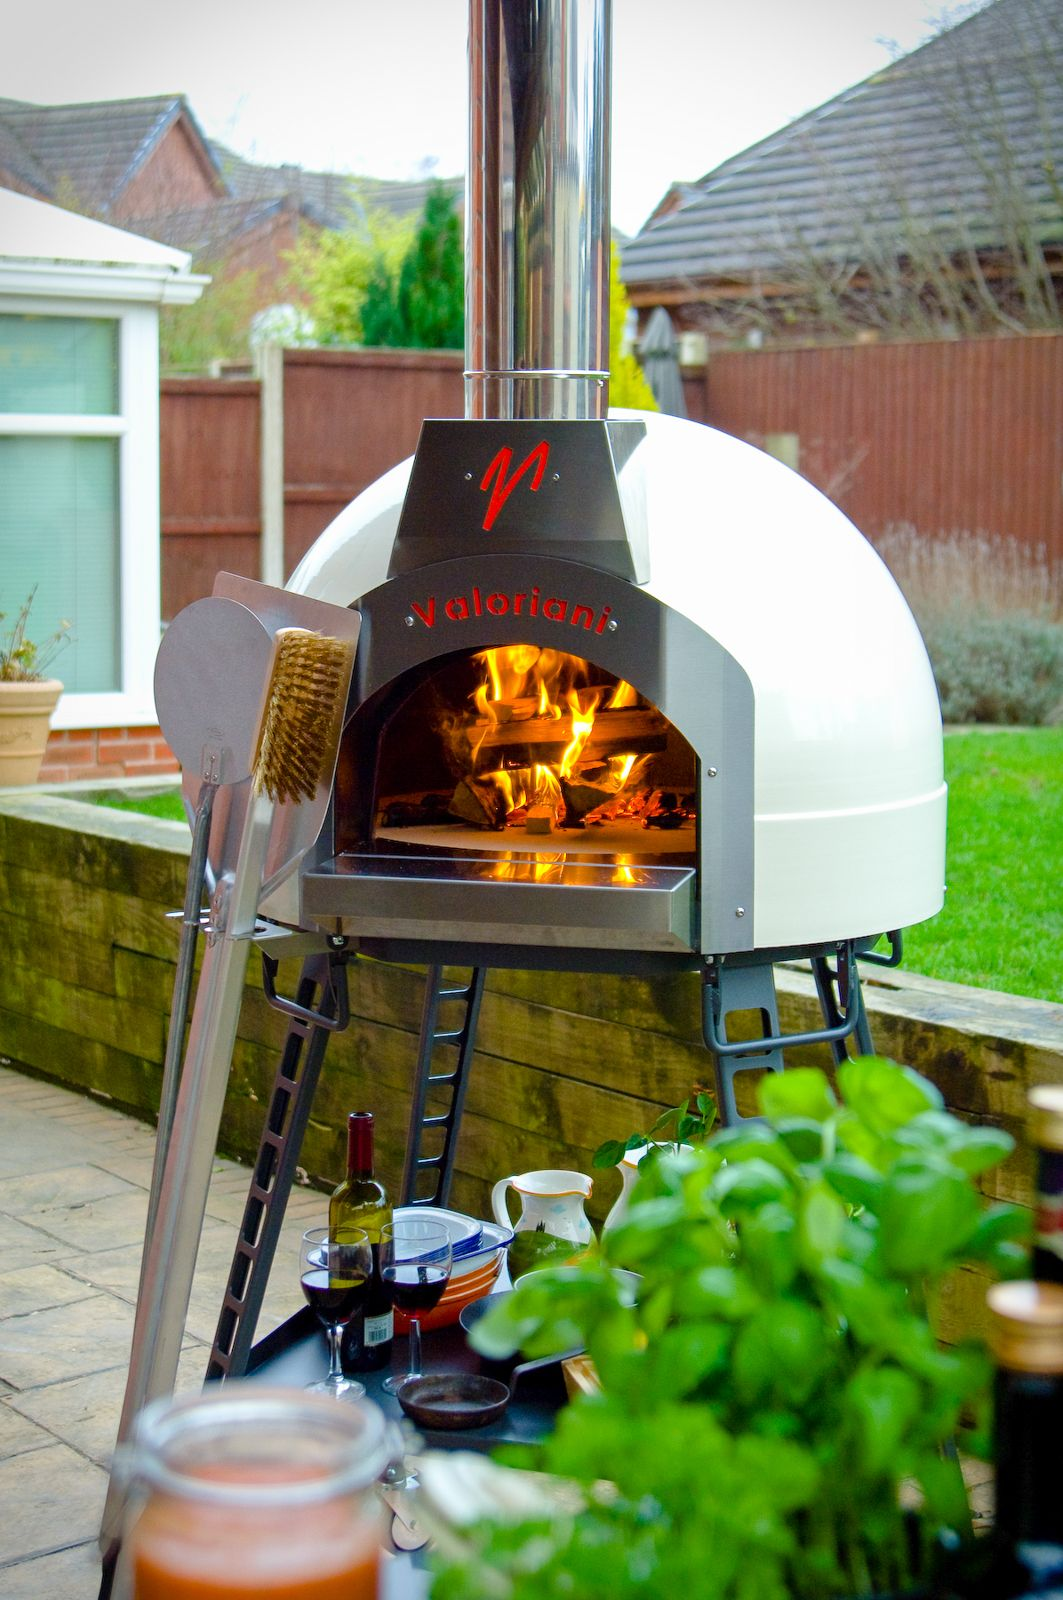 Our Wood Ovens Pizza Wood Fired Oven Valoriani Wood